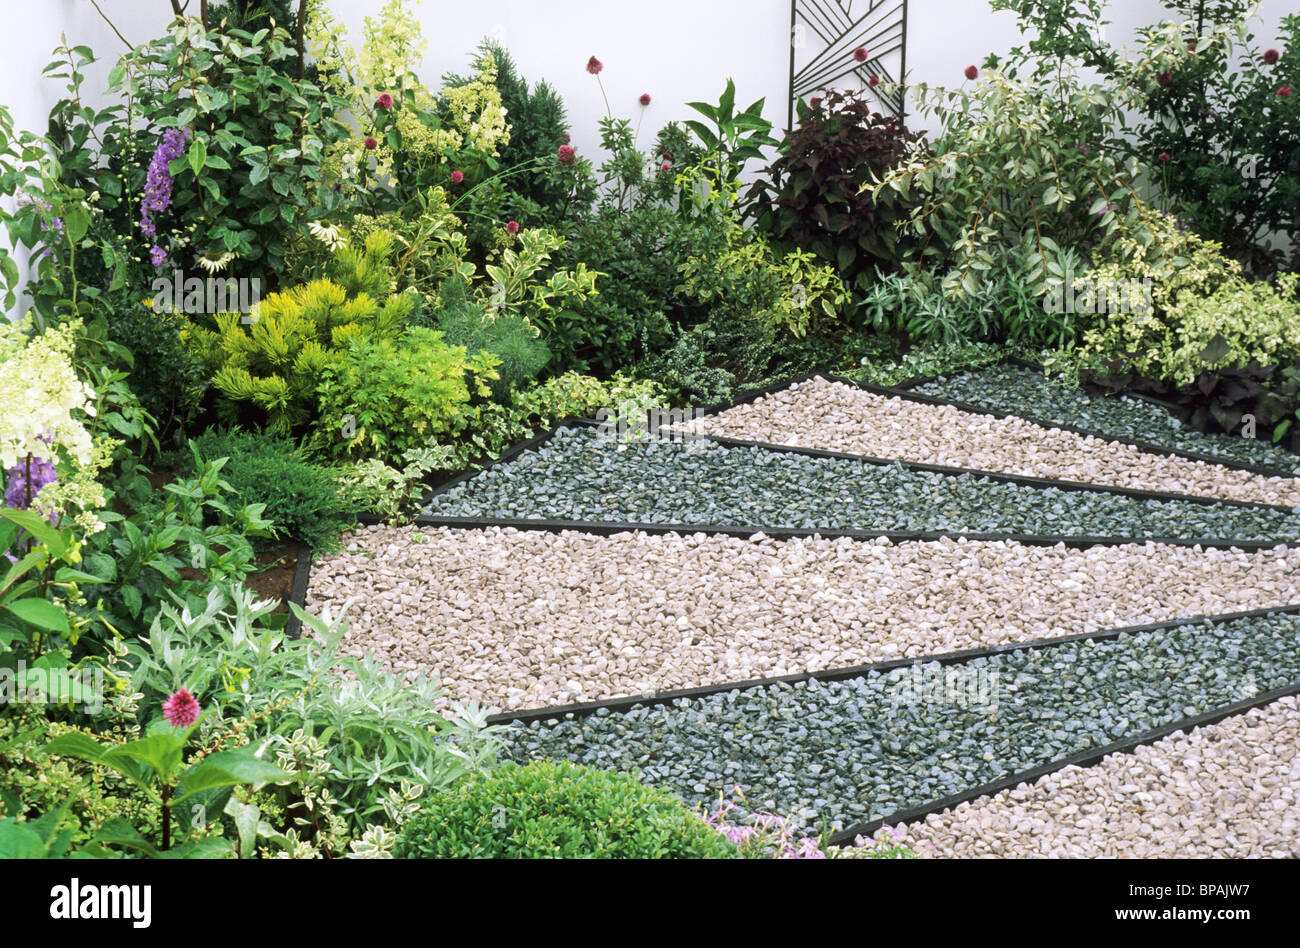 Pebble coloured gravel garden sandringham flower show floor ground pebble coloured gravel garden sandringham flower show floor ground pattern garden design designs pebbles contrast contrasting workwithnaturefo